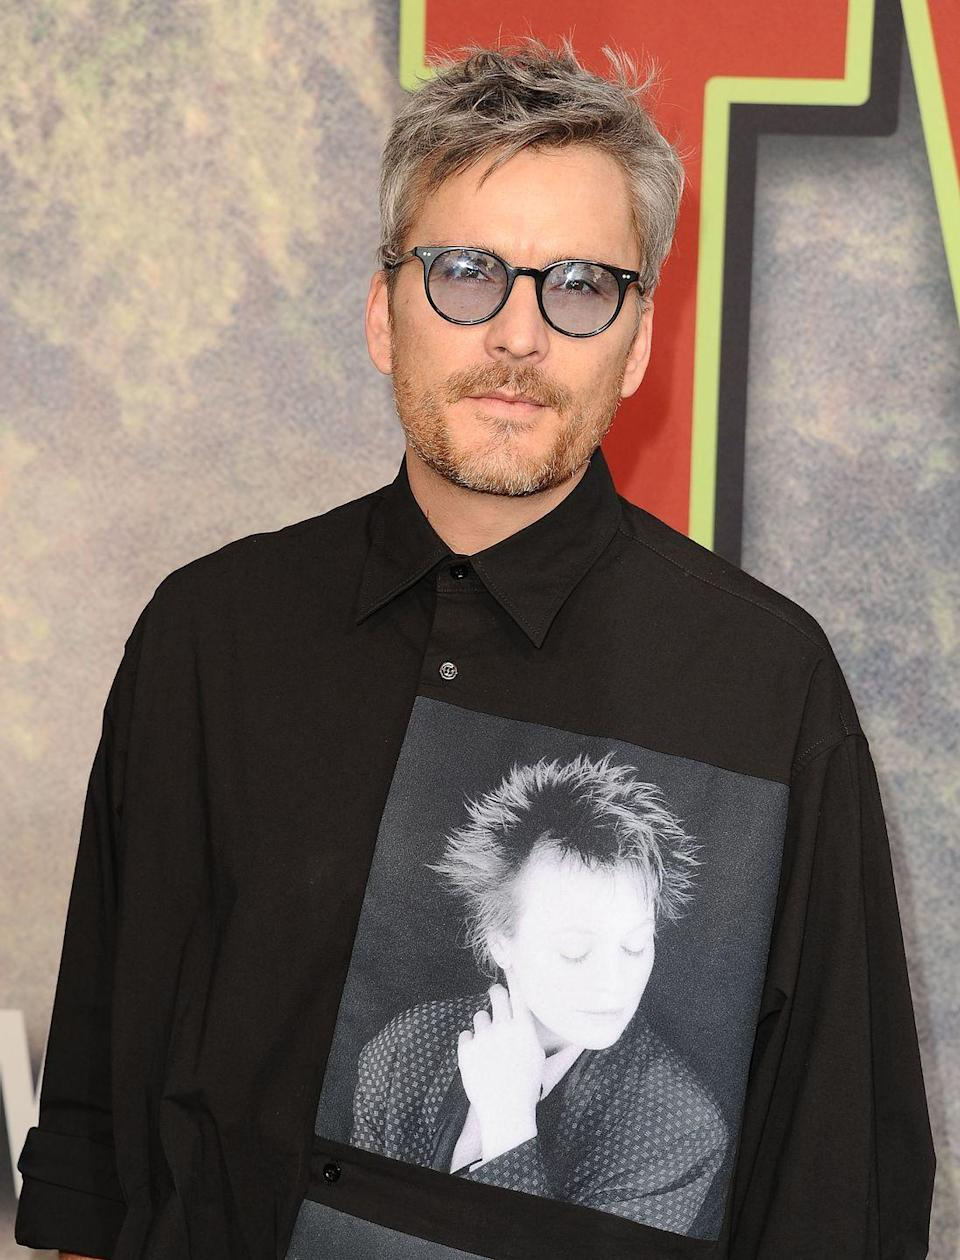 <p>Getty's most memorable post-<em>Alias</em> role was as Tommy Walker, one of the siblings on the ABC series <em>Brothers & Sisters. </em>Getty appeared on the <em>Twin Peaks</em> reboot and is also on the board of directors for the Lunchbox Fund, a non-profit helping to provide meals for school children in South Africa.</p>